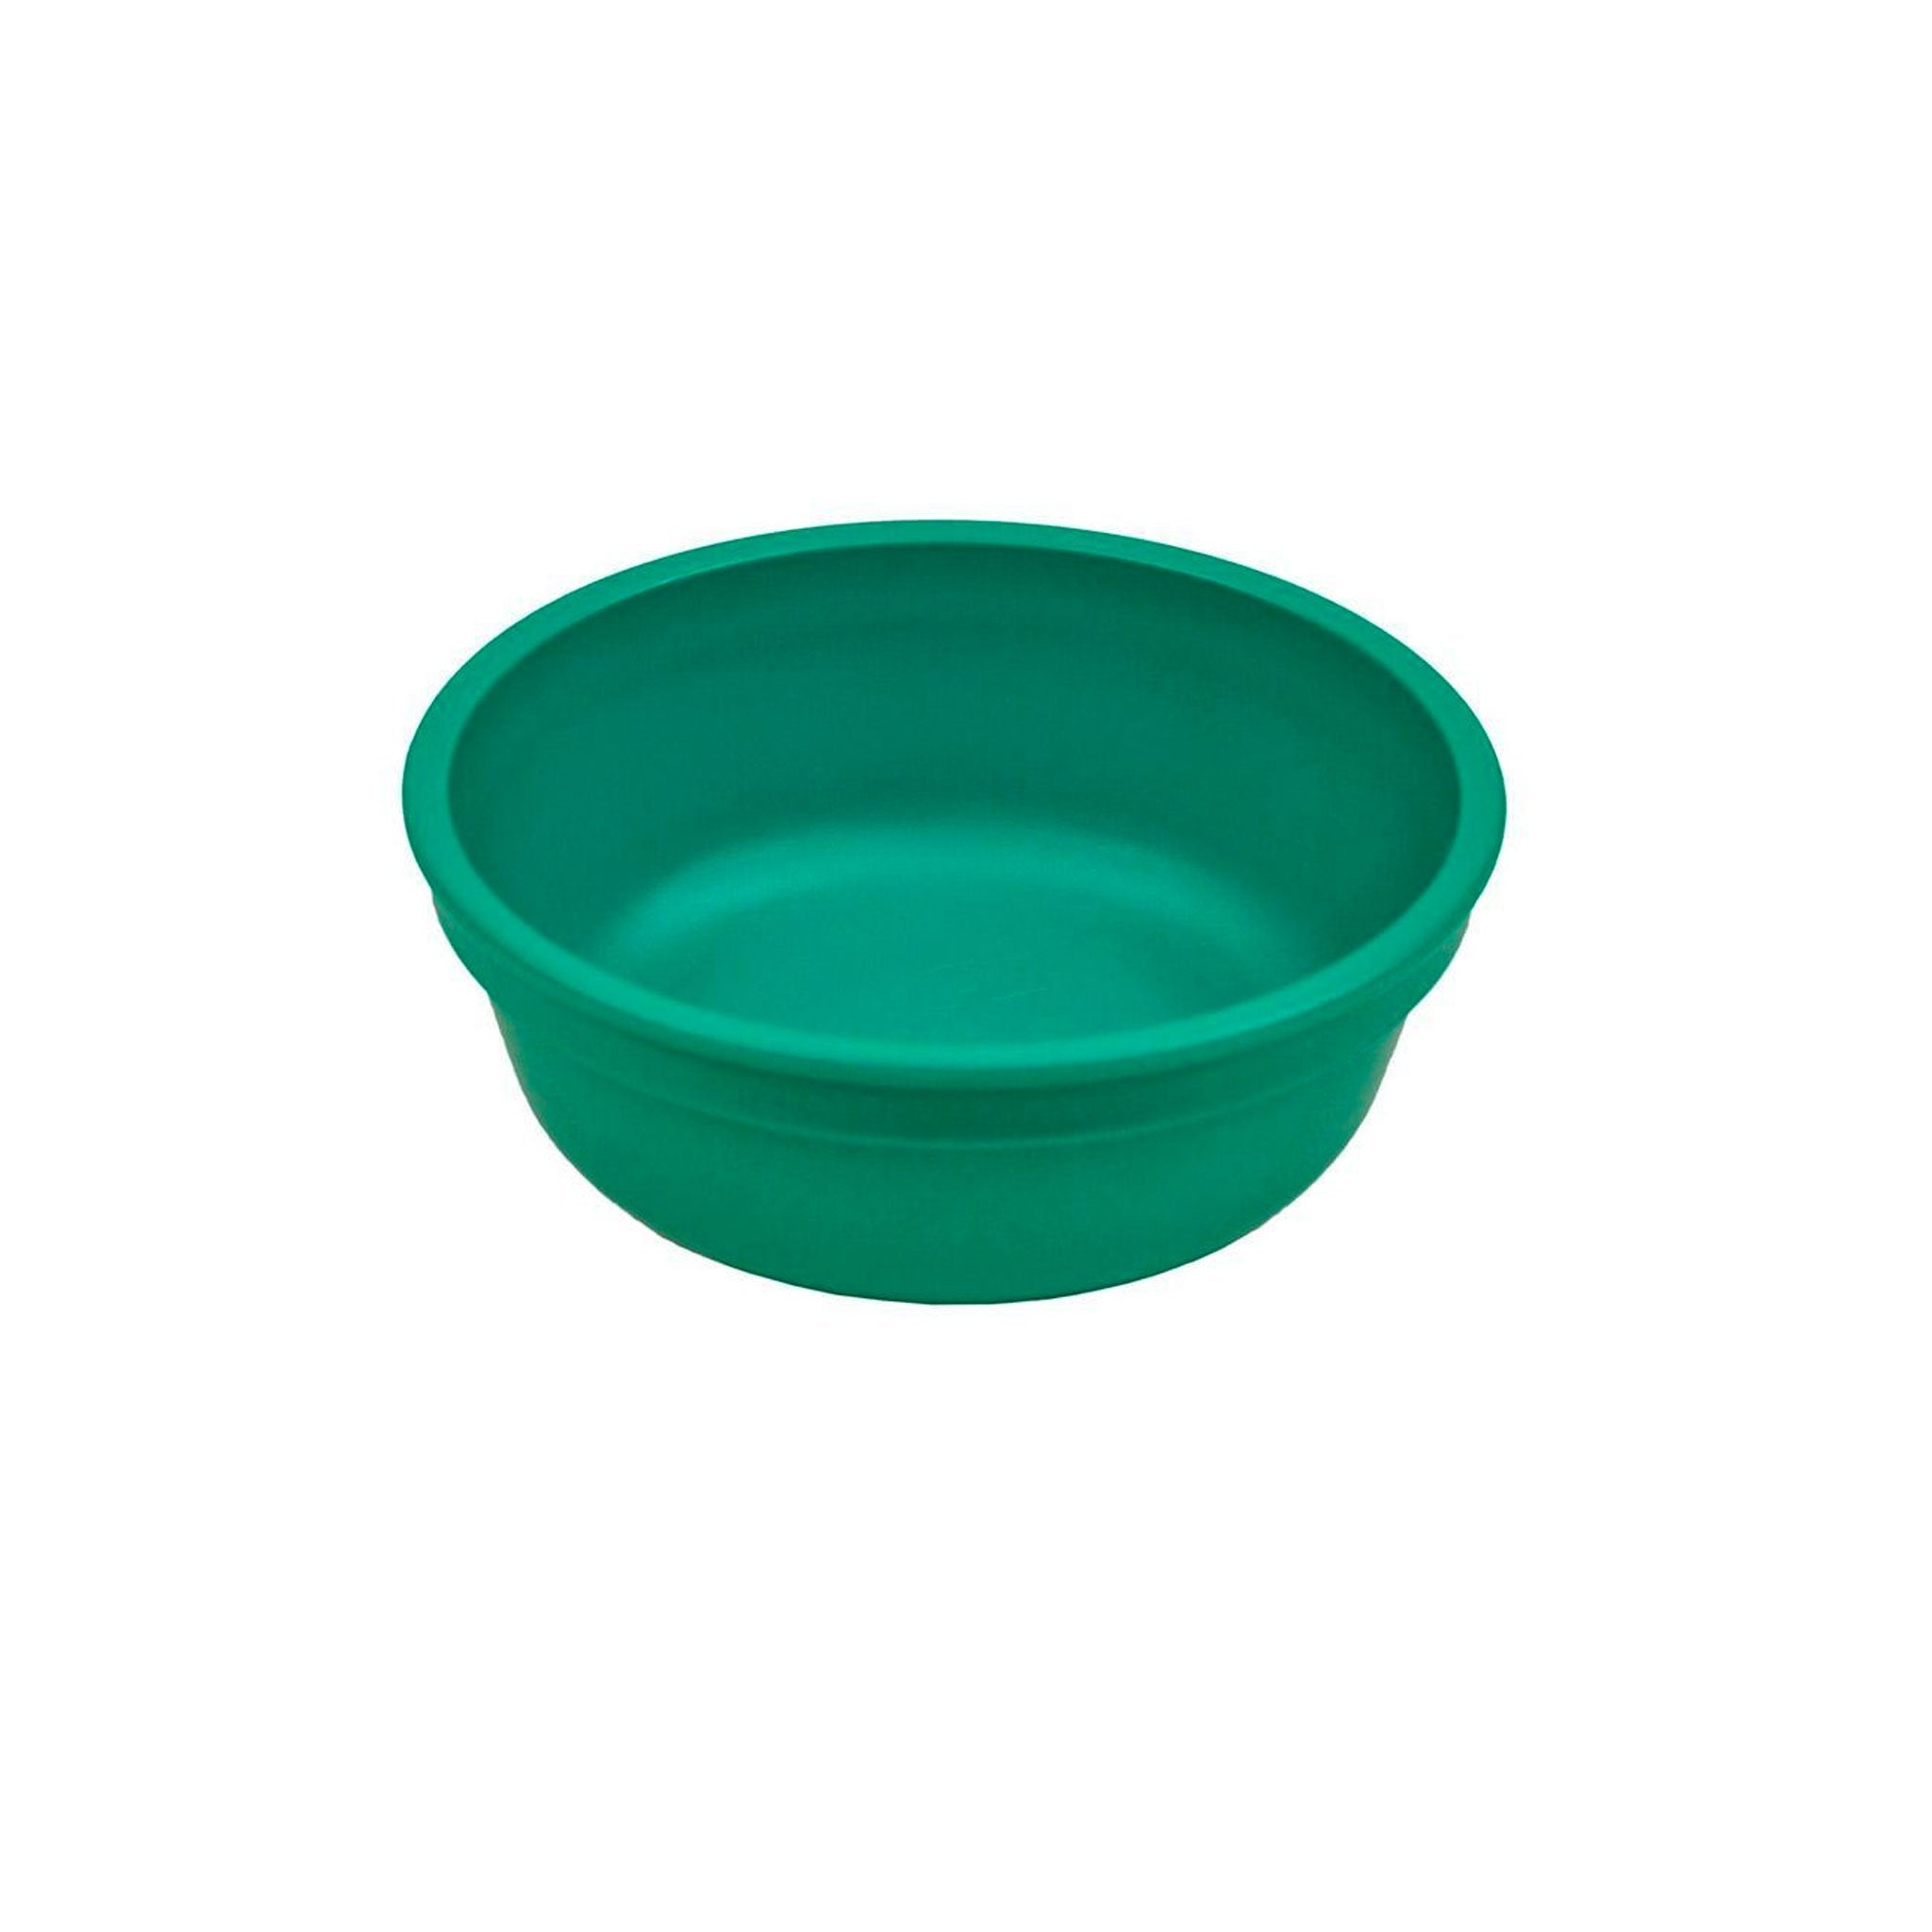 Replay Bowl Replay Lifestyle Teal at Little Earth Nest Eco Shop